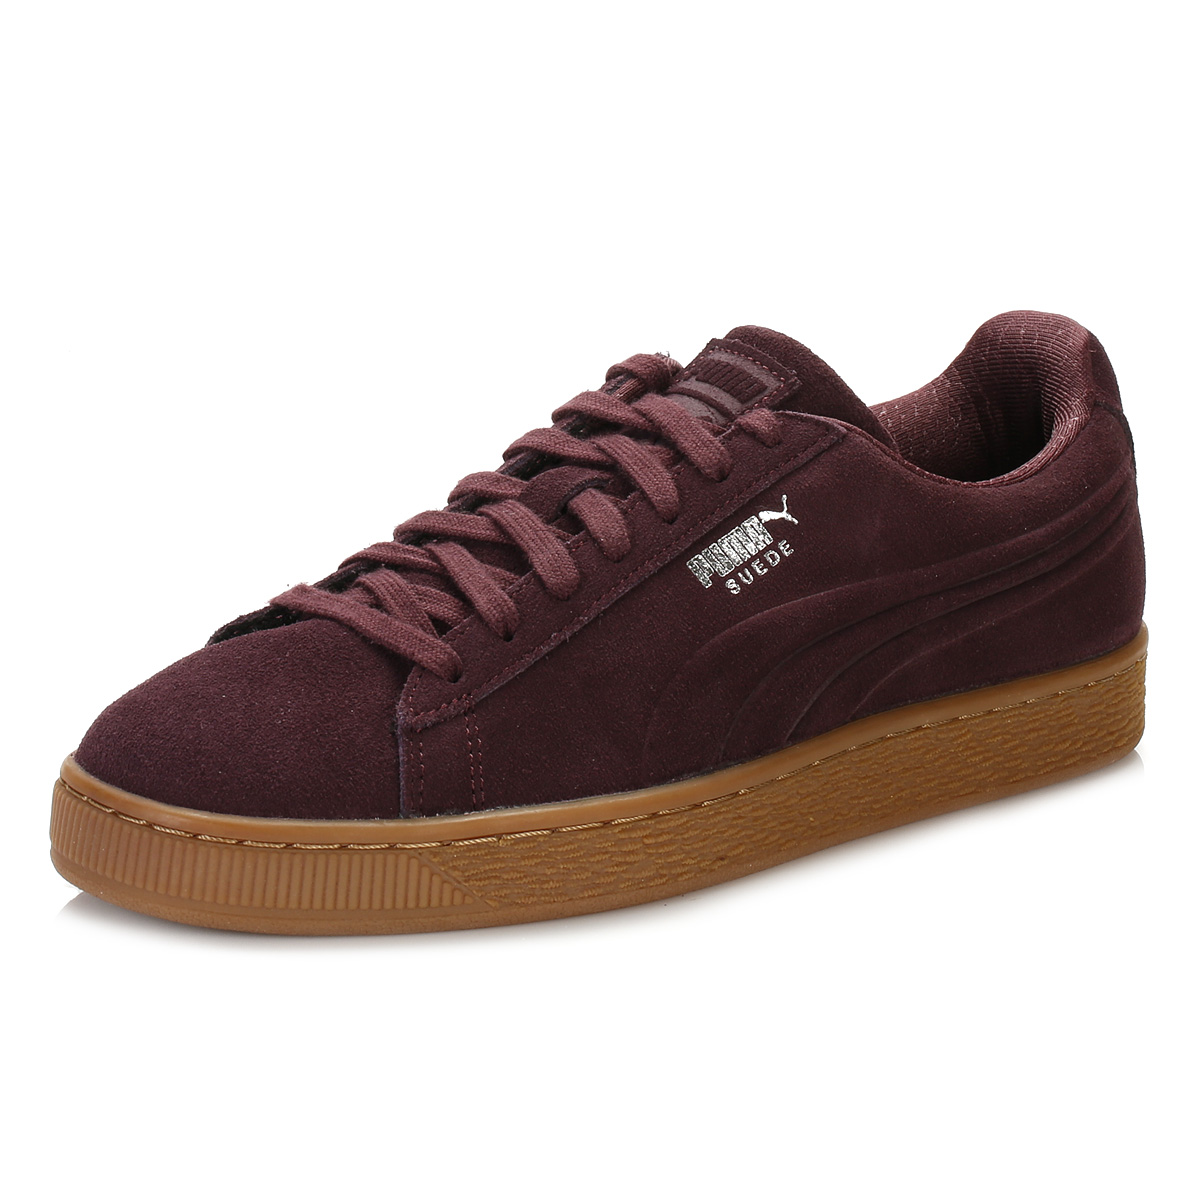 Buy low price, high quality red suede shoes men with worldwide shipping on thrushop-06mq49hz.ga